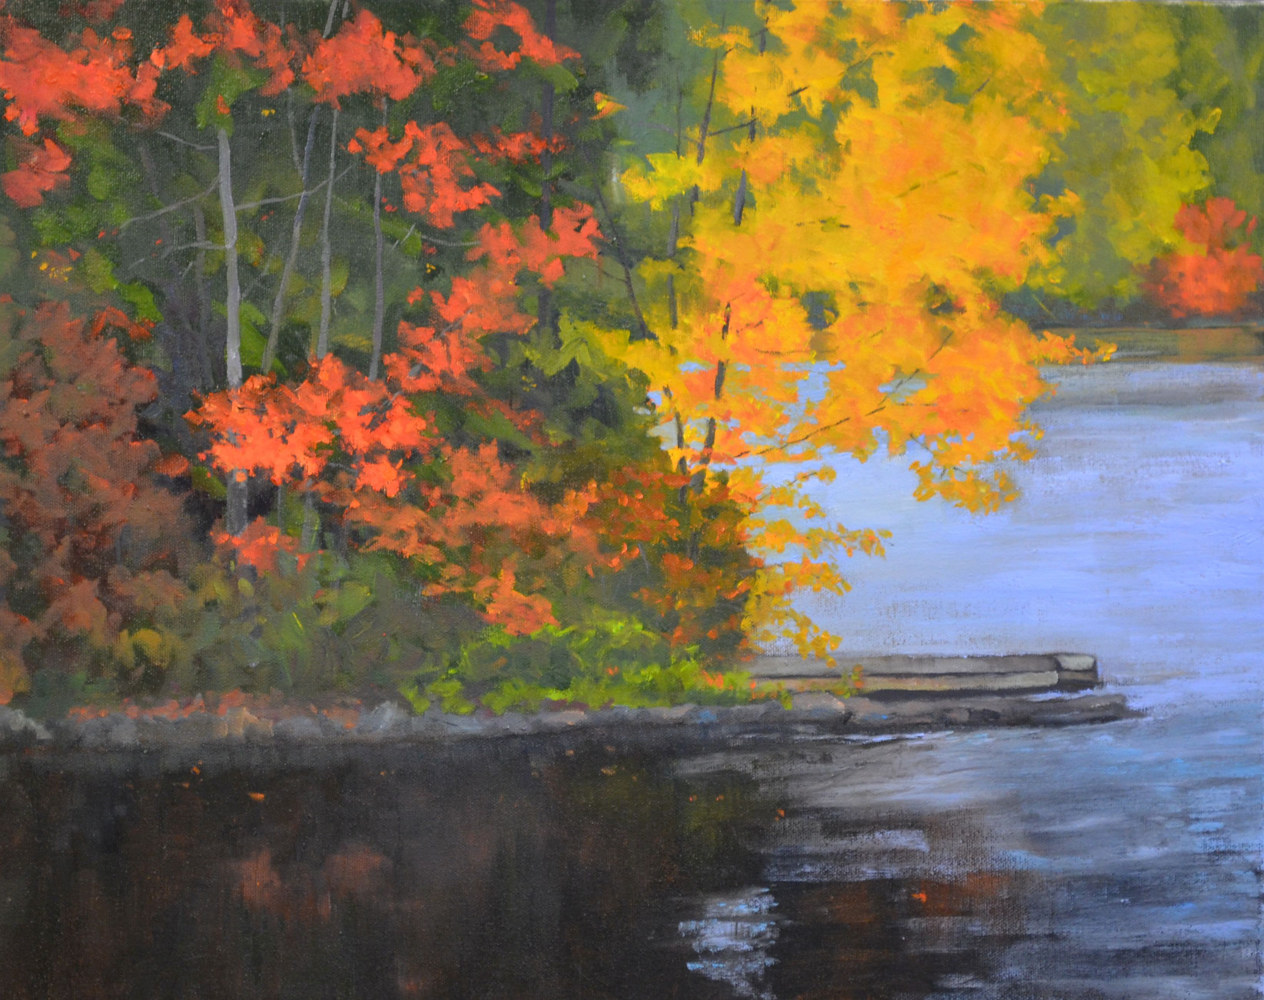 When October Comes 16 x 20, oil on gallery canvas, 32-1016 by Patricia Savoie